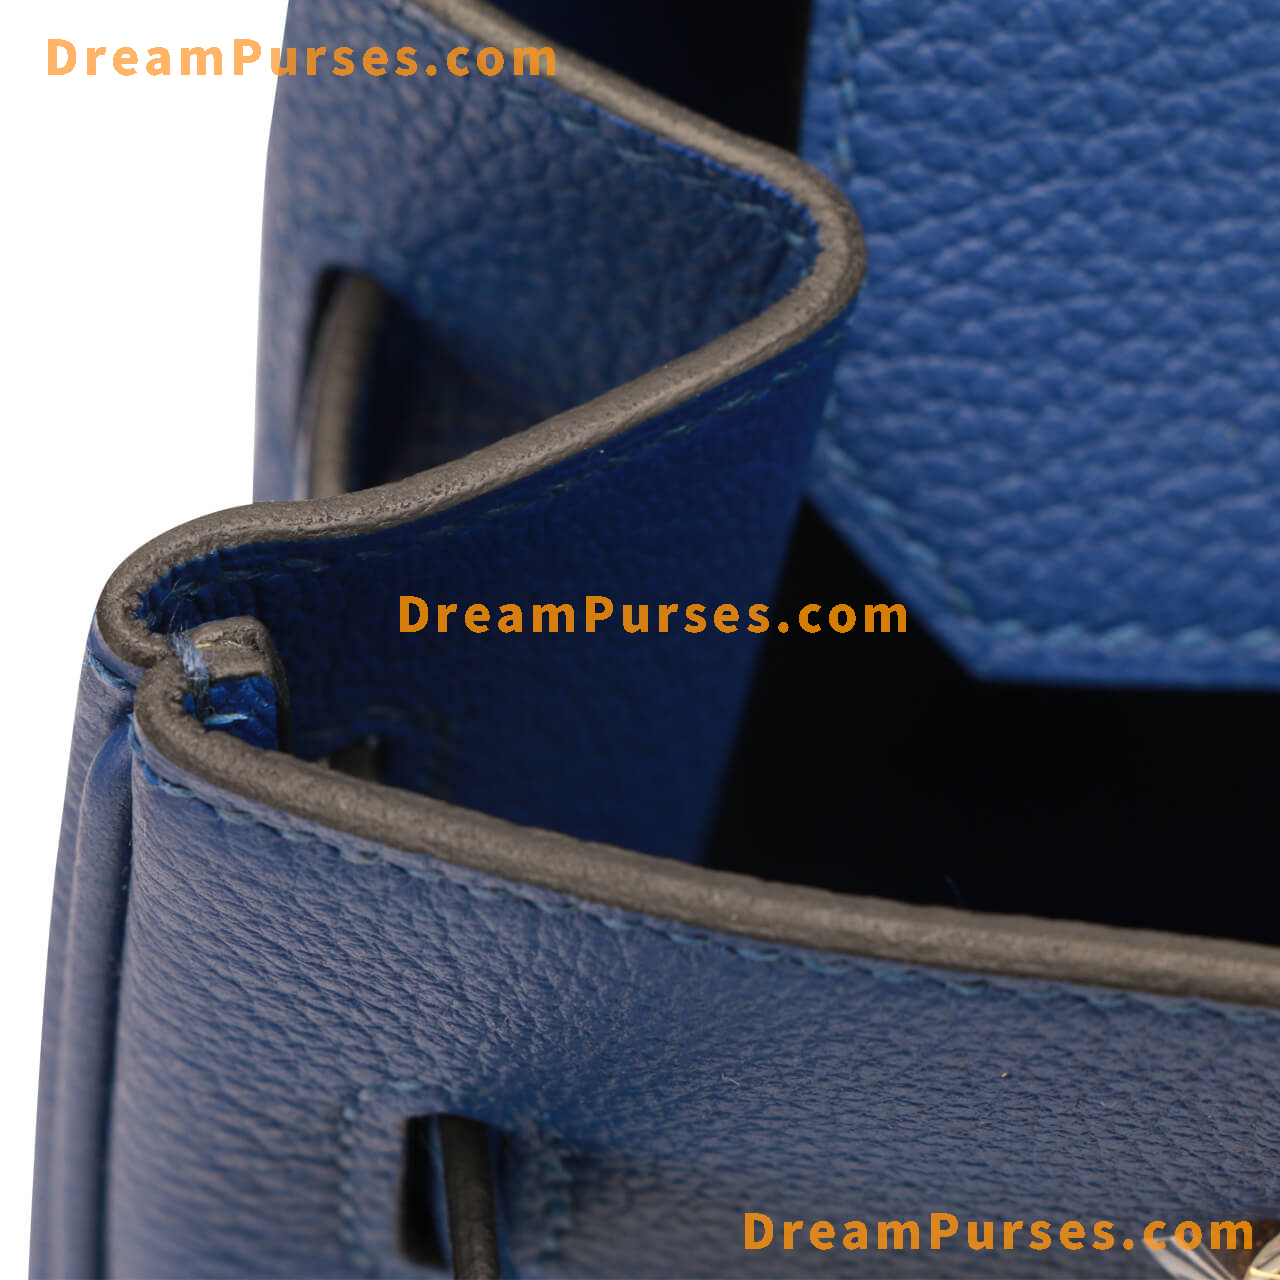 even tiny details on this hermes birkin super fake are identical to the real birkin 2